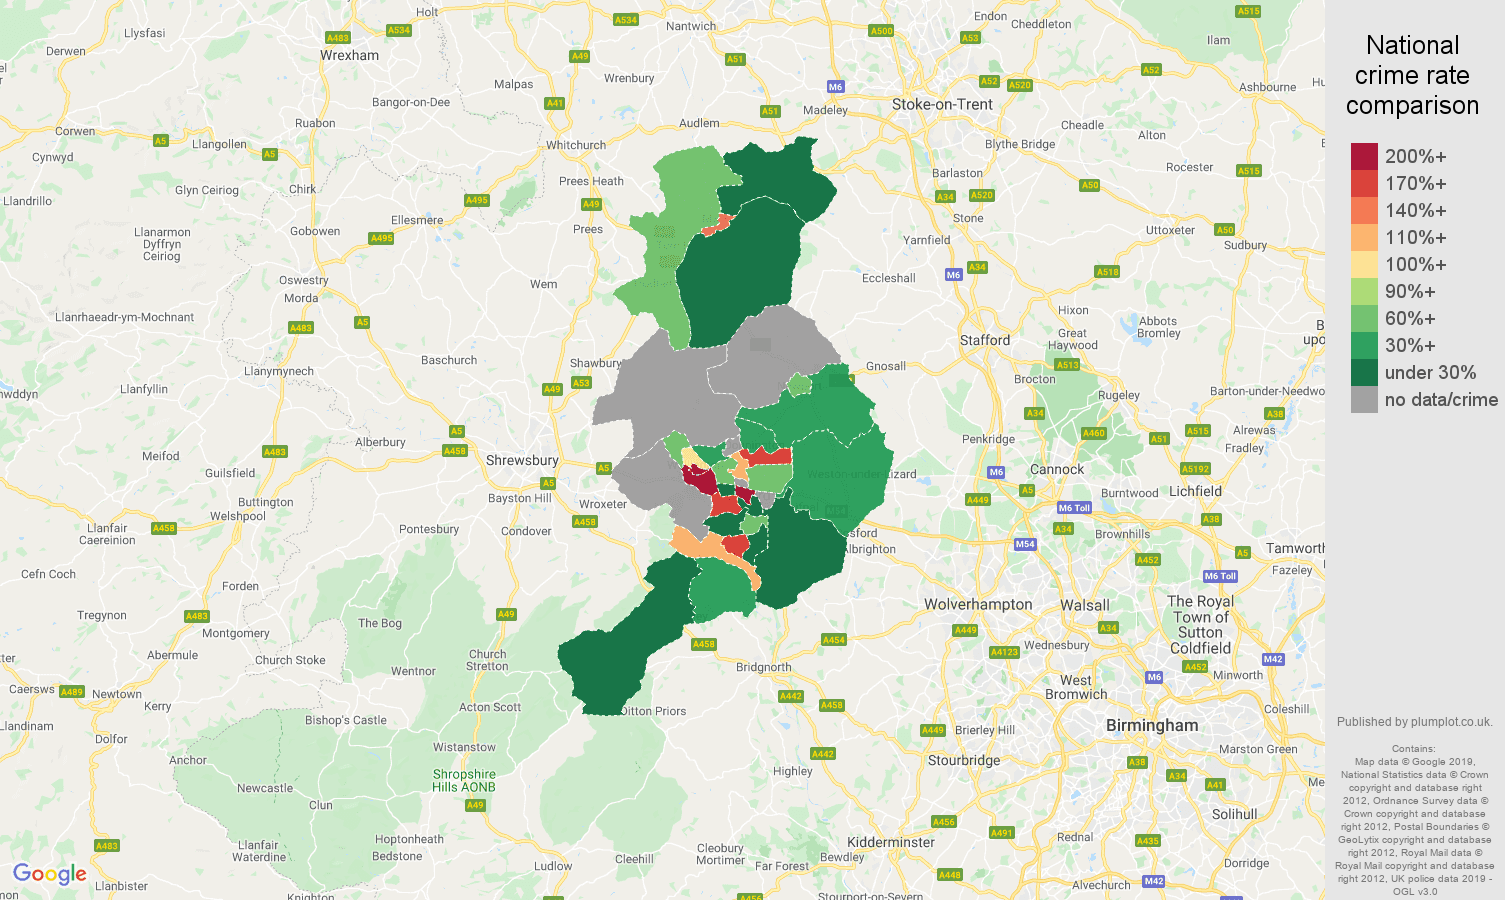 Telford shoplifting crime rate comparison map